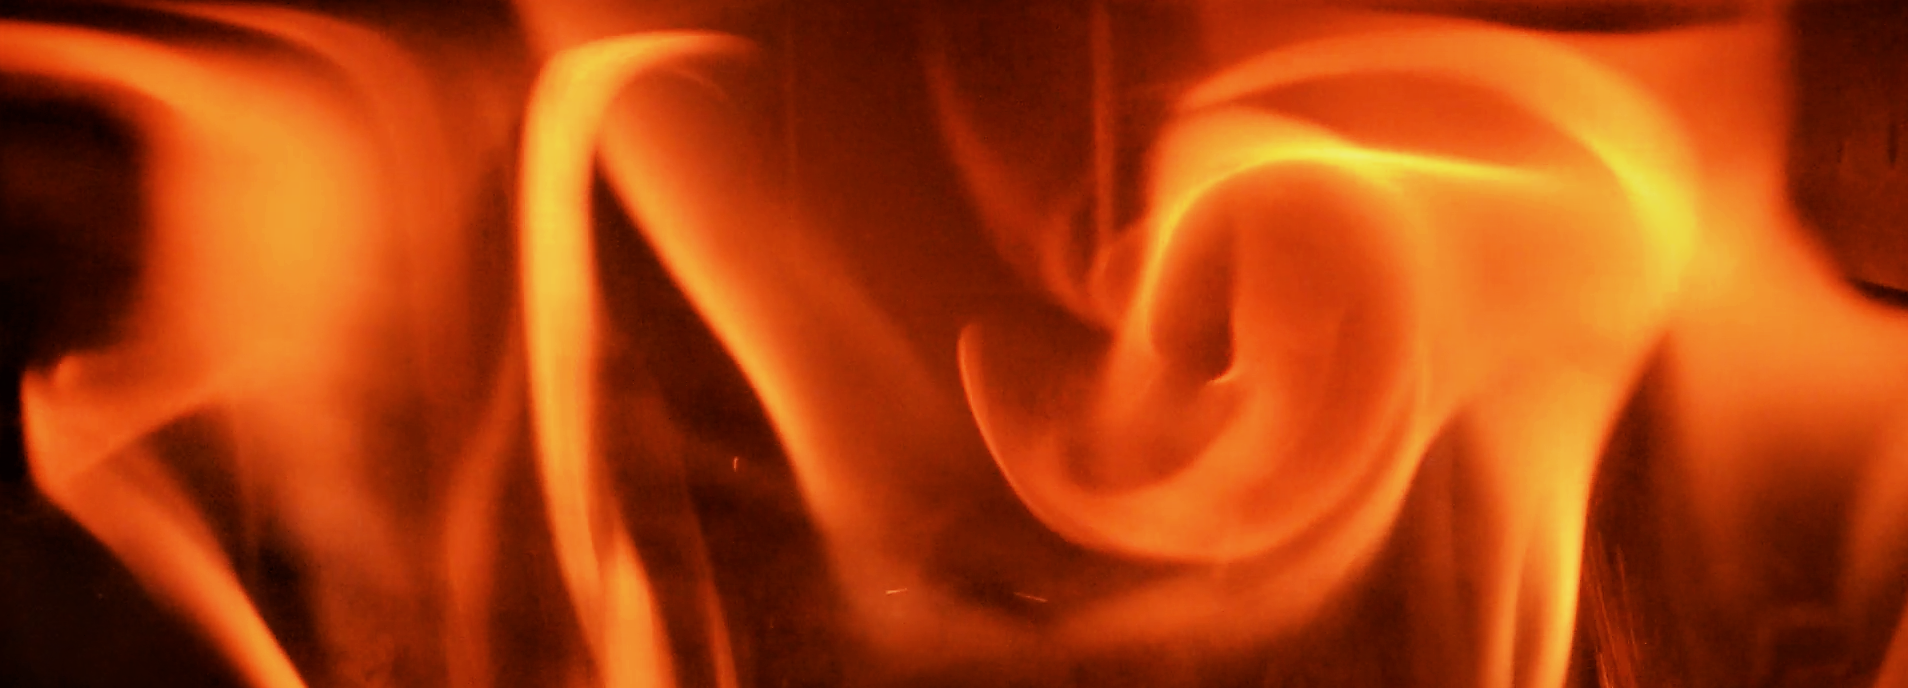 Swirling flames banner